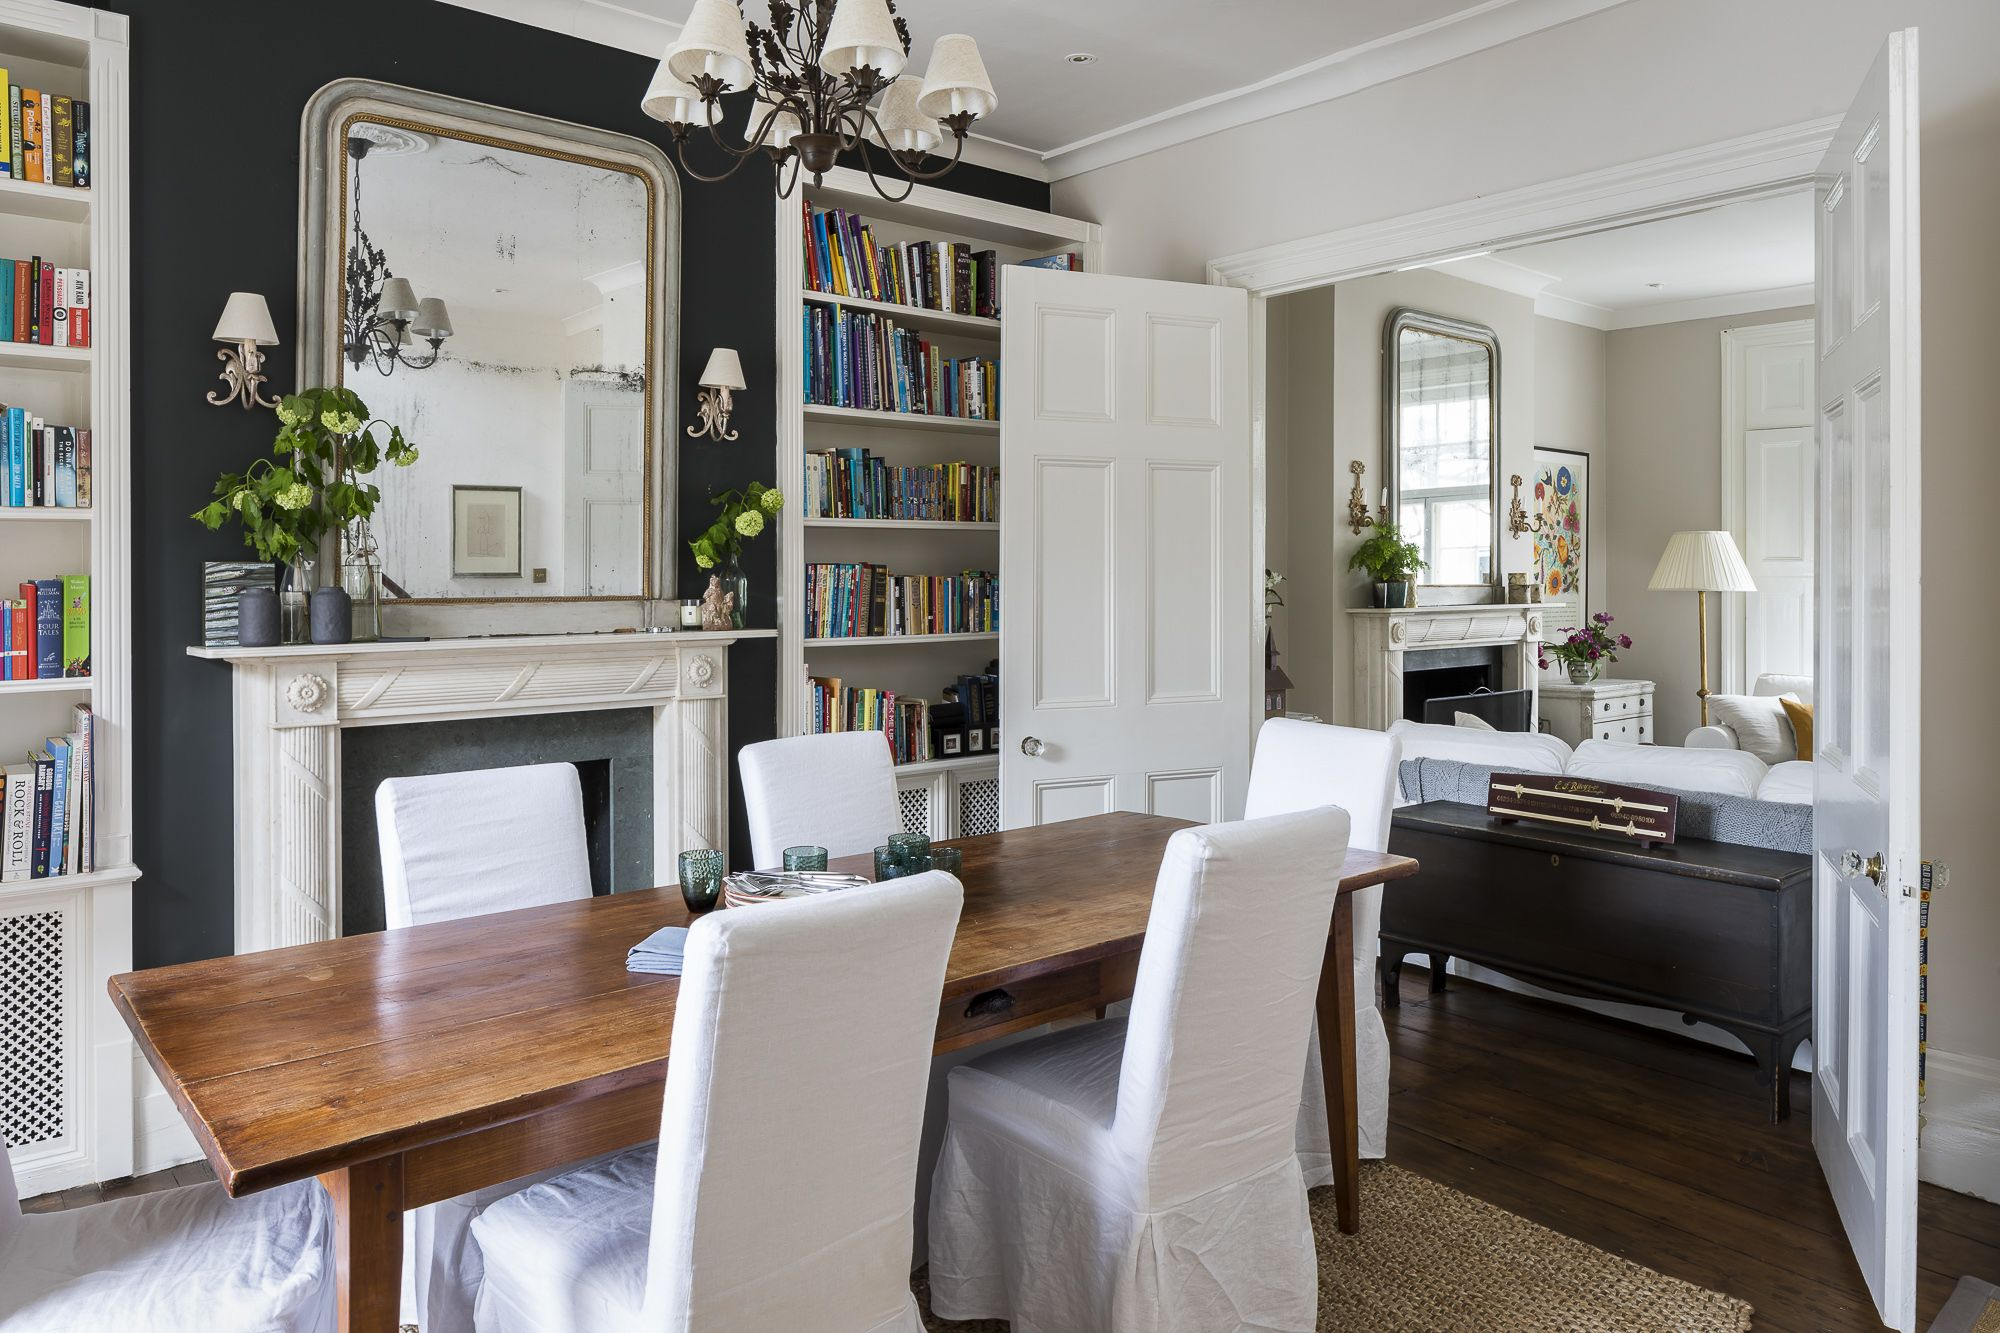 Interior Design By Imperfect Interiors At This Georgian Terraced House In London A Palette Of Calm Farrow Townhouse Interior Living Dining Room House Interior